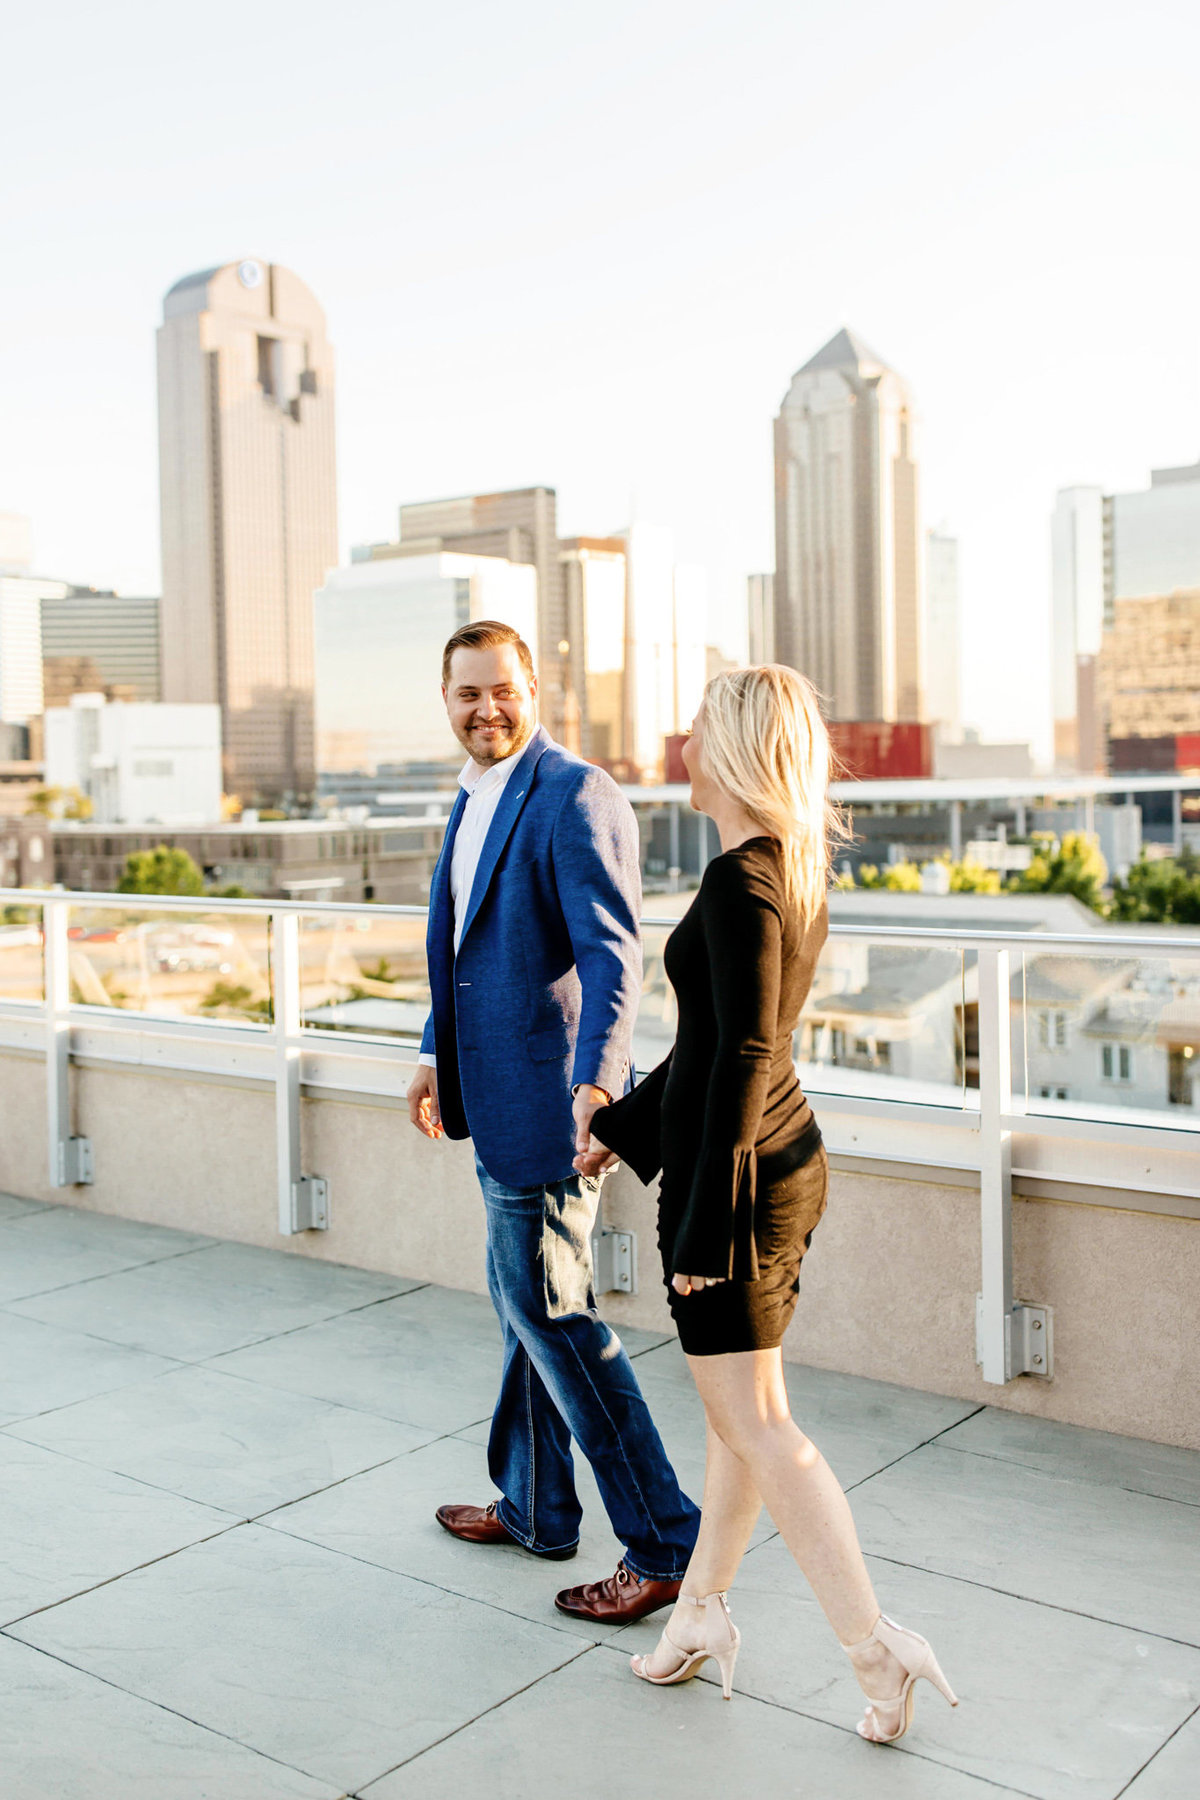 Eric & Megan - Downtown Dallas Rooftop Proposal & Engagement Session-74